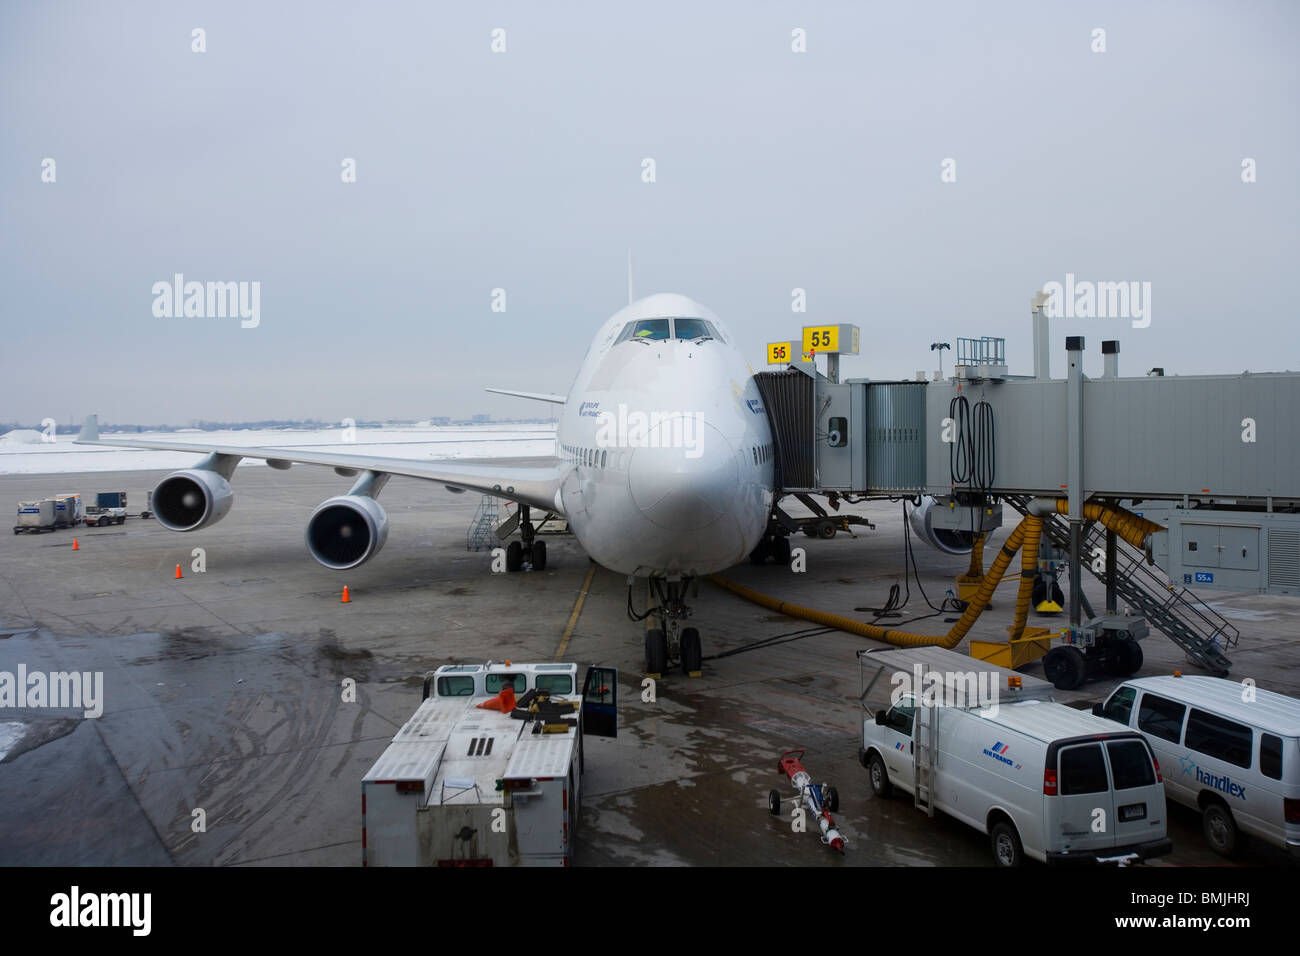 View of aircraft in airport - Stock Image